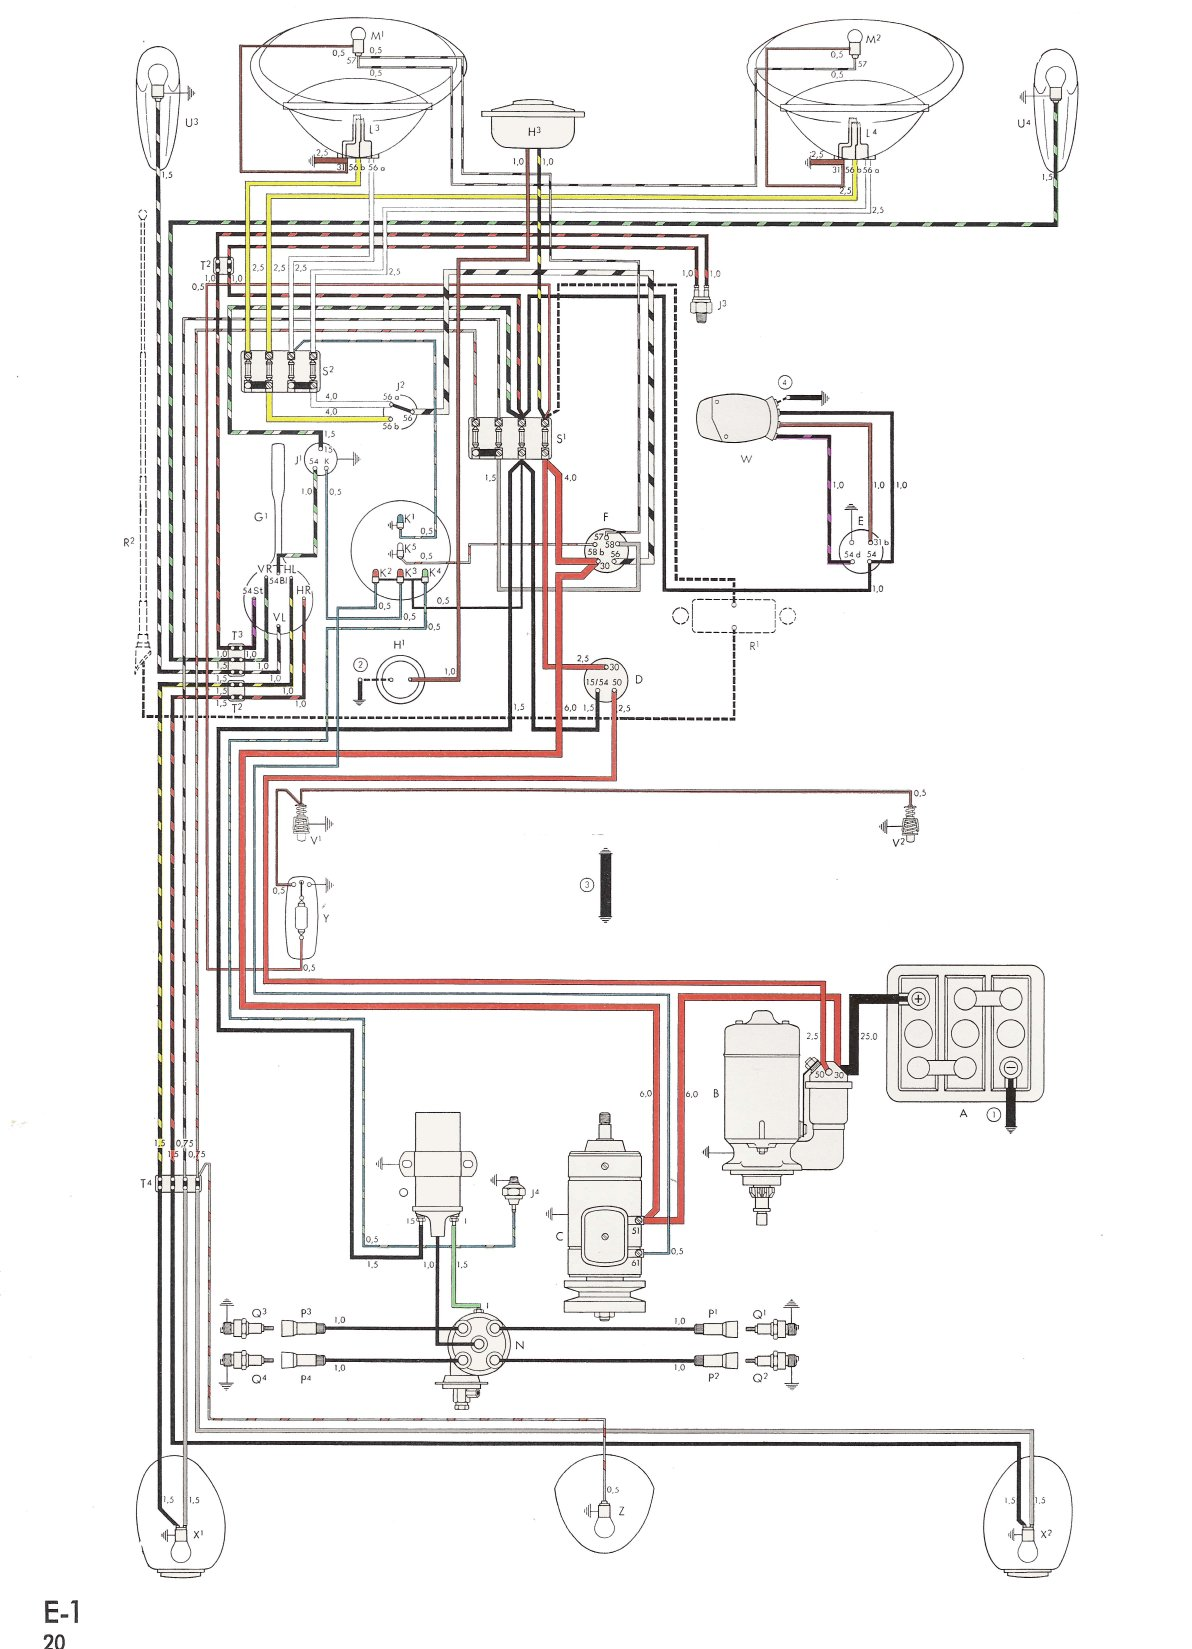 1974 VW Thing Wiring Diagram http://www.keywordpicture.com/abuse/1974%20vw%20beetle%20wiring%20diagram///